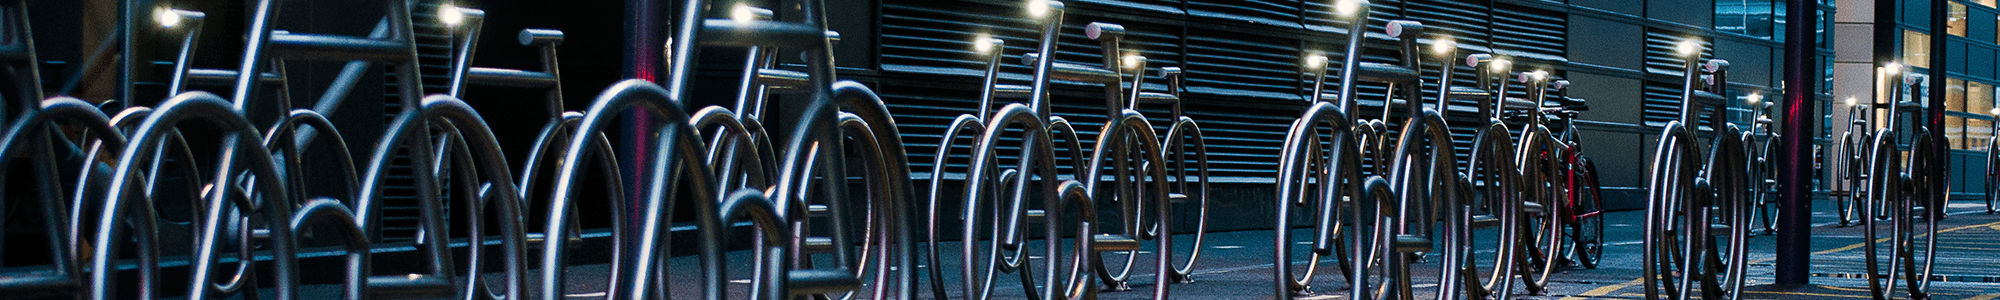 Bike racks © Tim Spijkerman